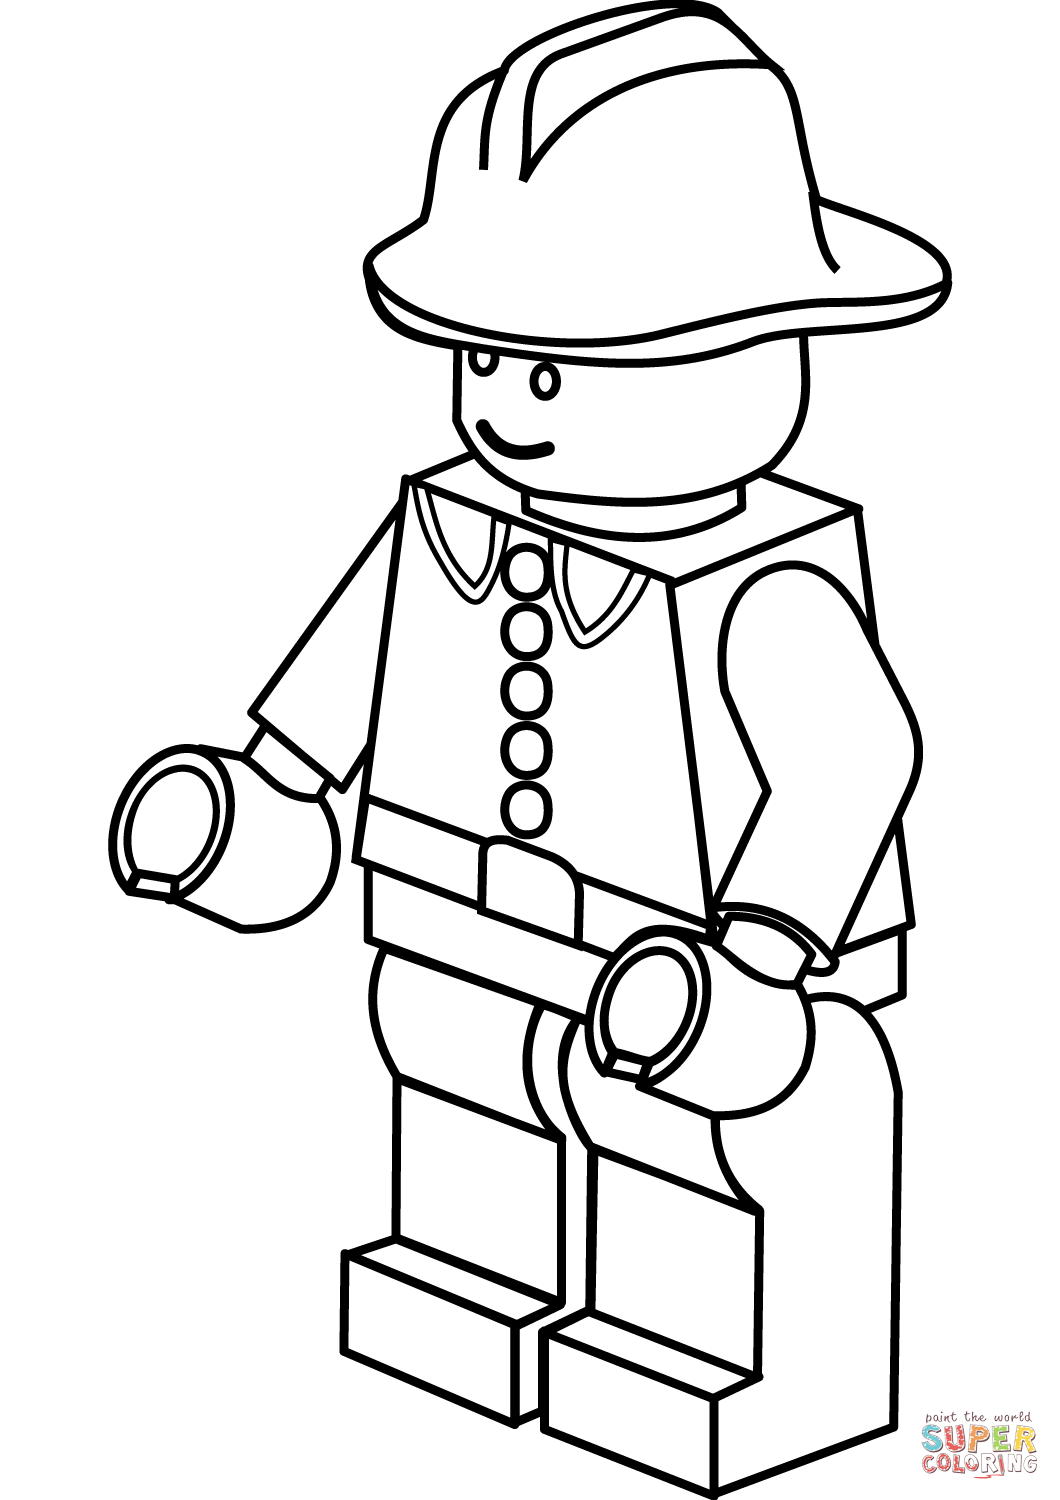 lego fire truck coloring lego fire truck coloring pages at getdrawings free download truck coloring fire lego